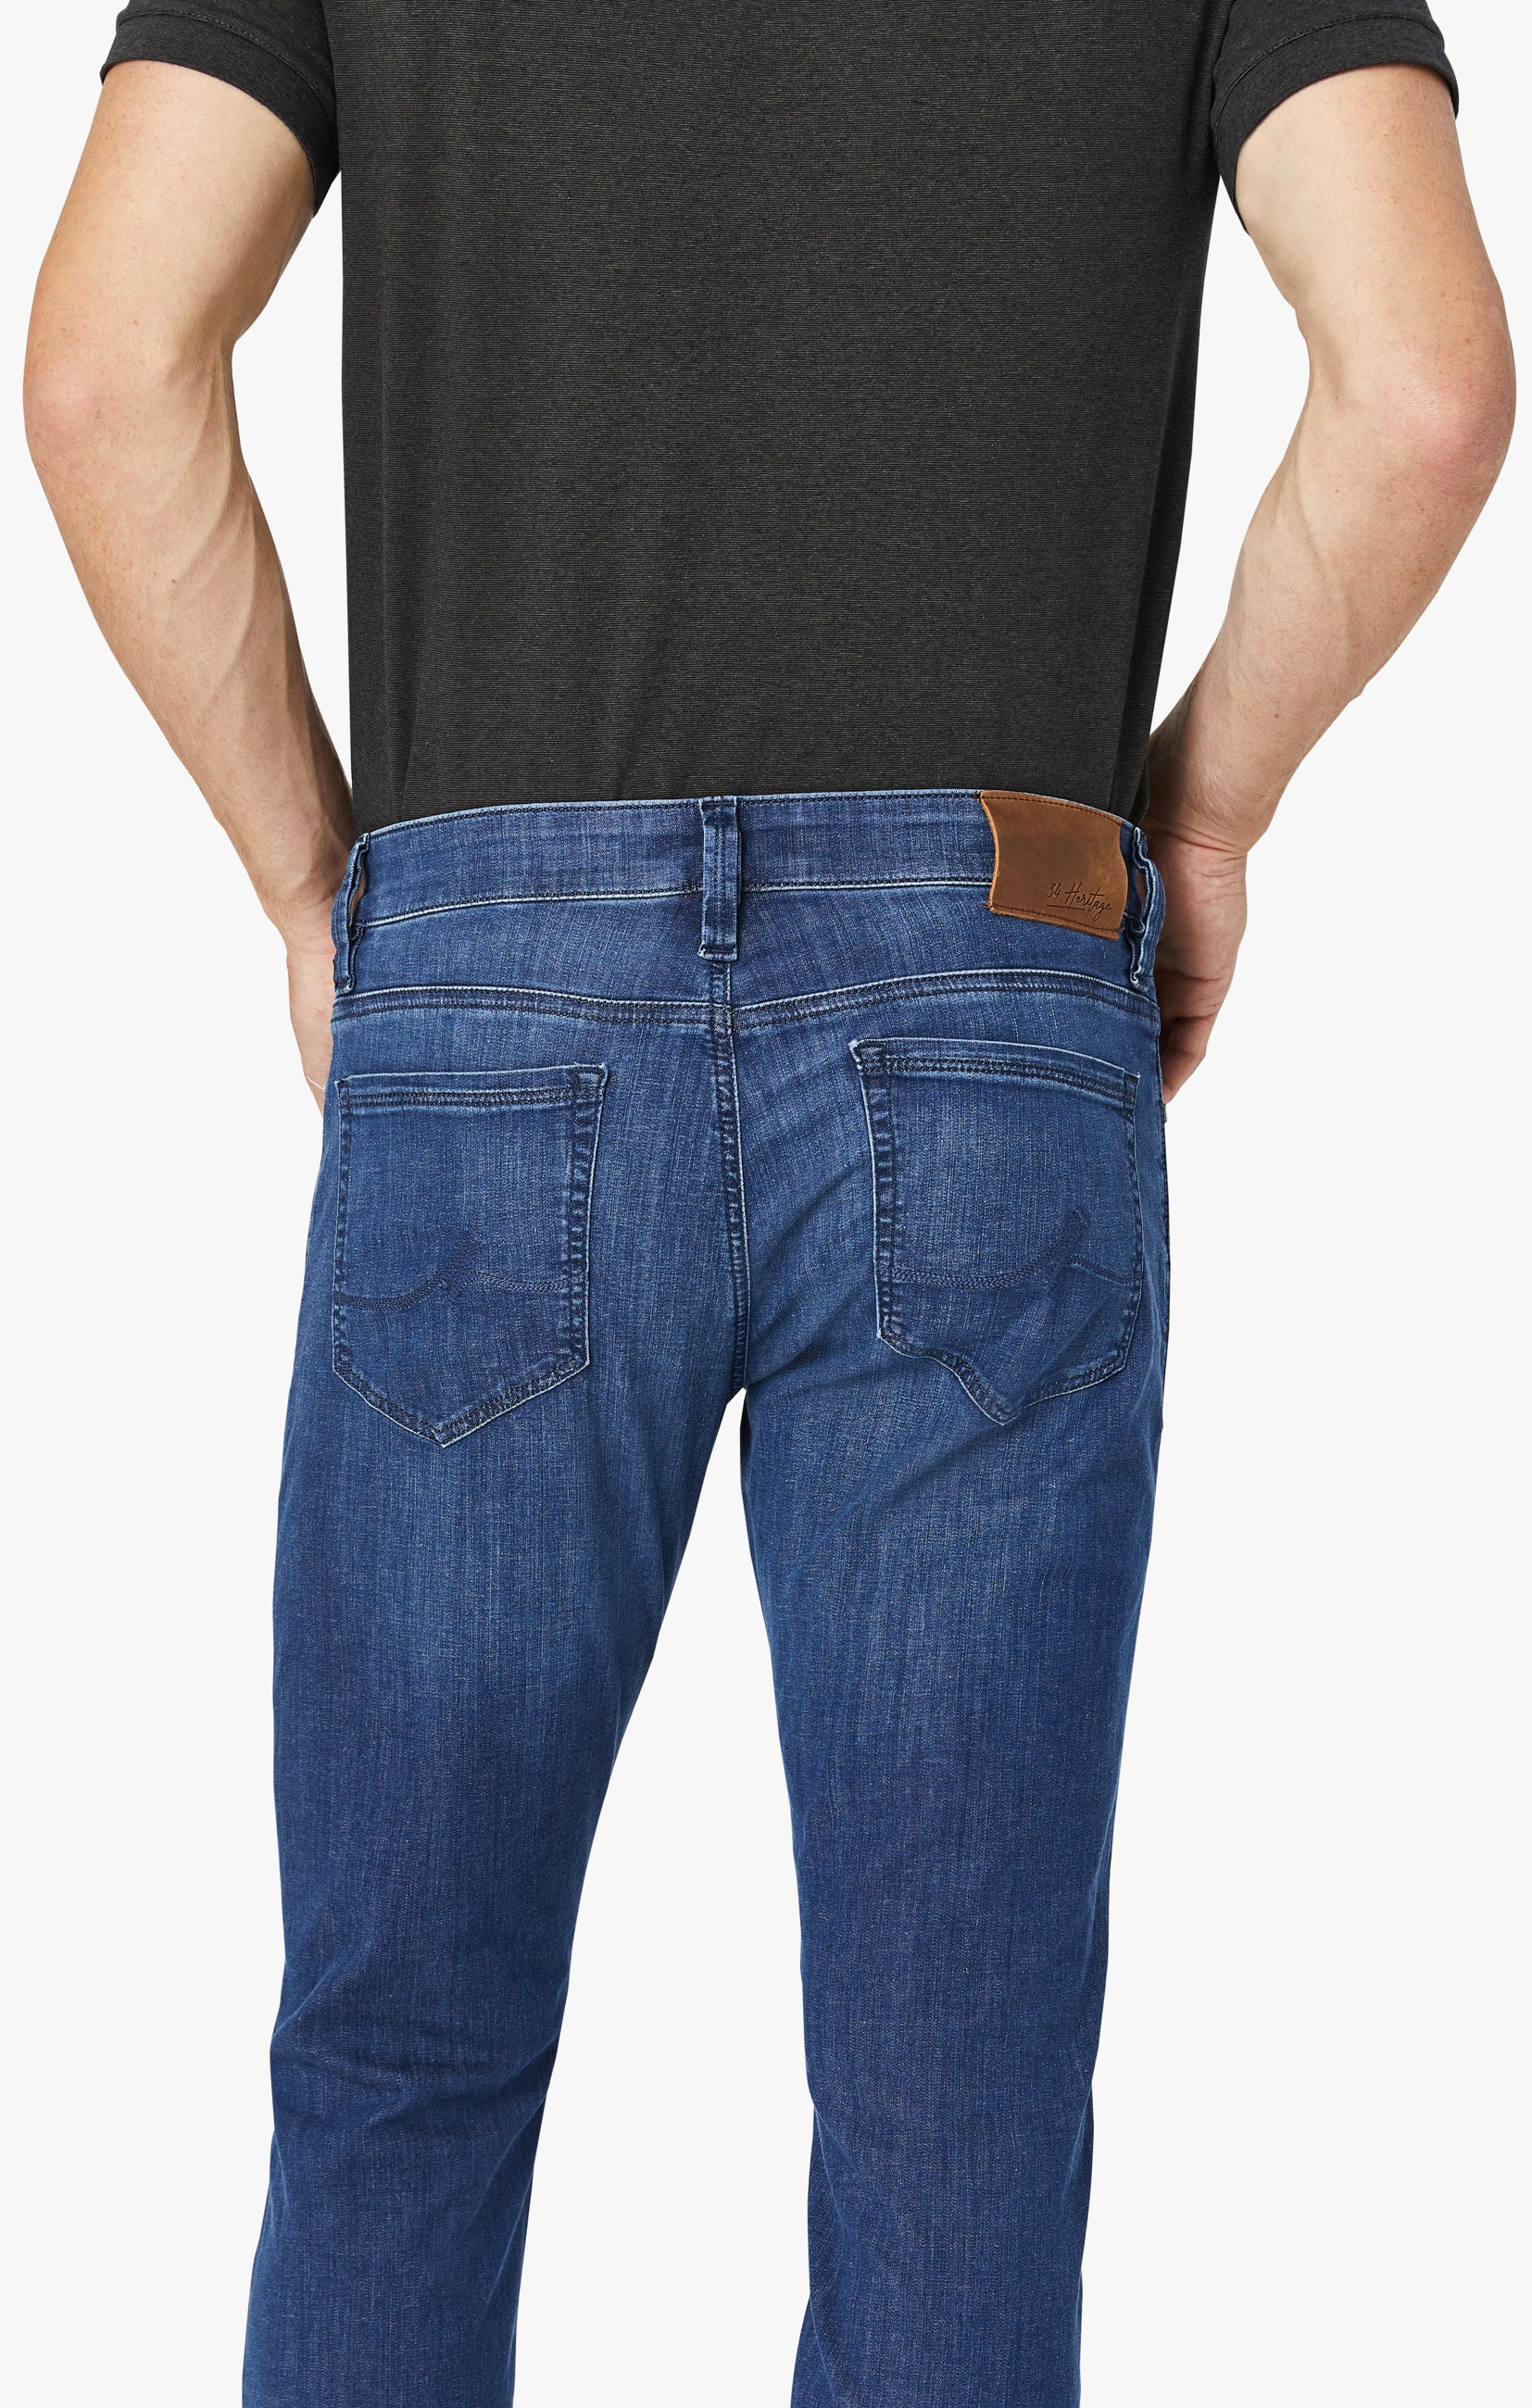 Cool Tapered Leg Jeans In Mid Kona Image 7